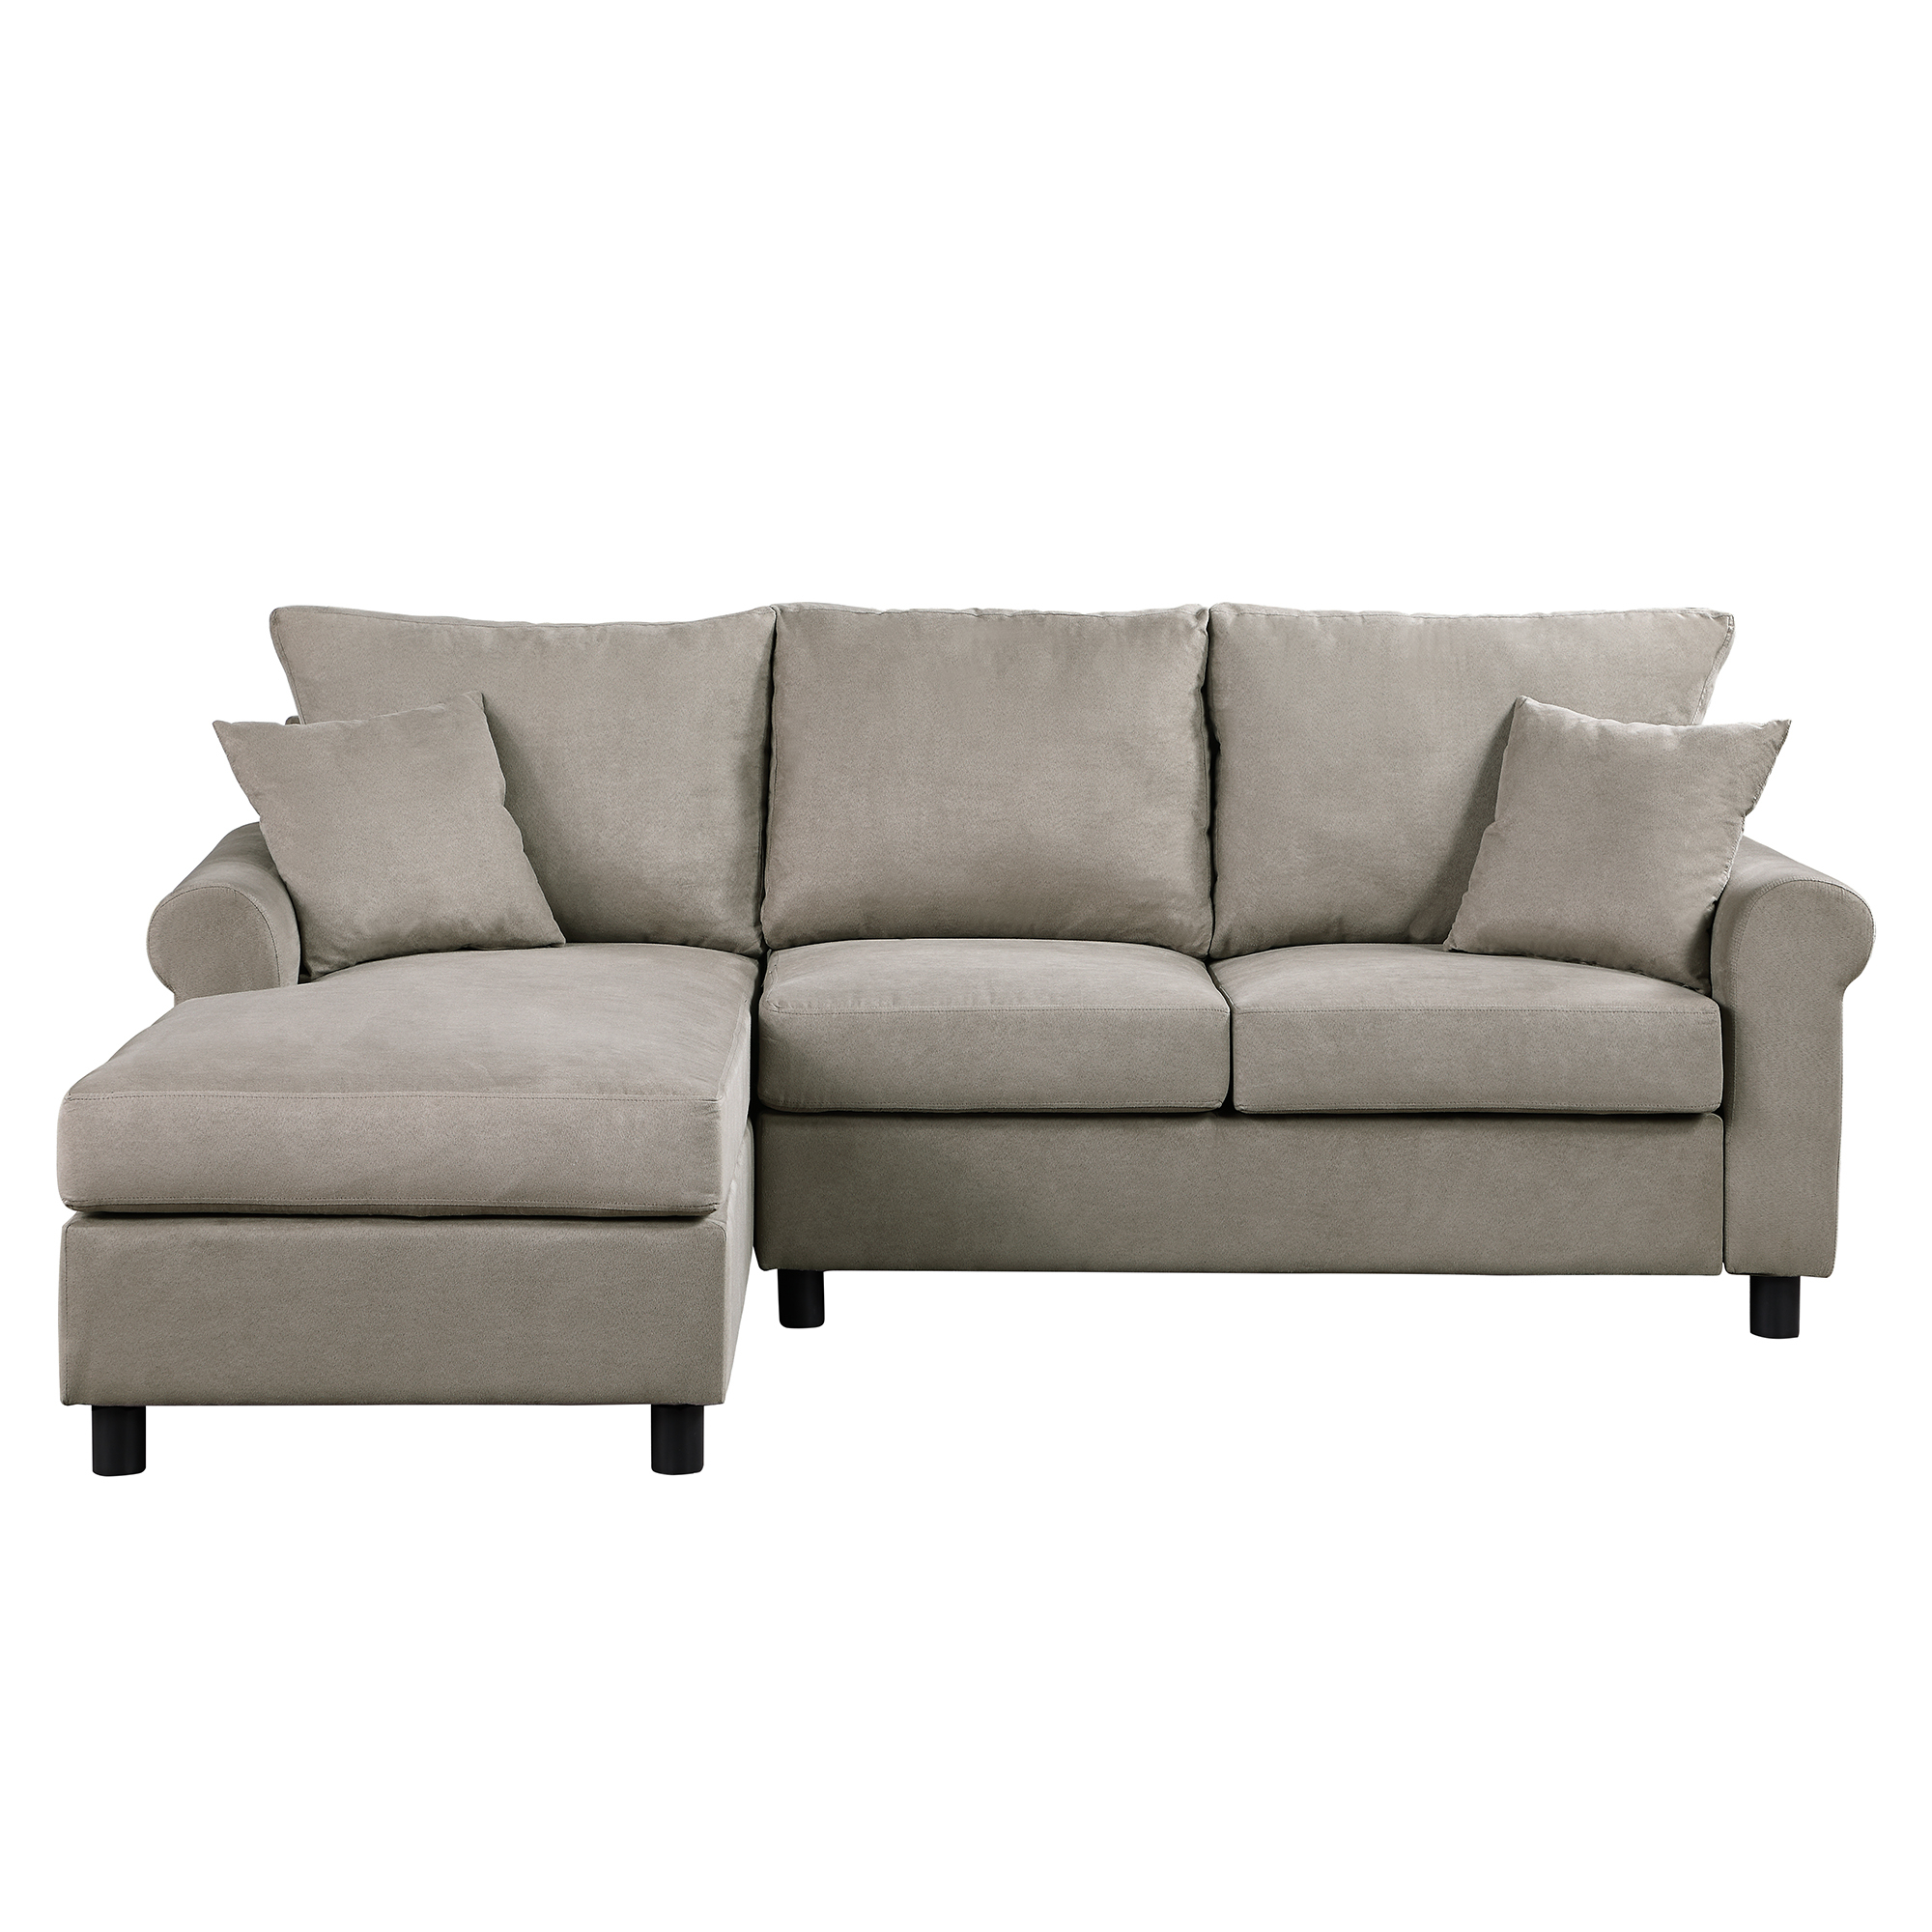 Sectional Sofa, Segmart 35'' X 85'' X 61'' Tufted Throughout Verona Mid Century Reversible Sectional Sofas (View 8 of 15)